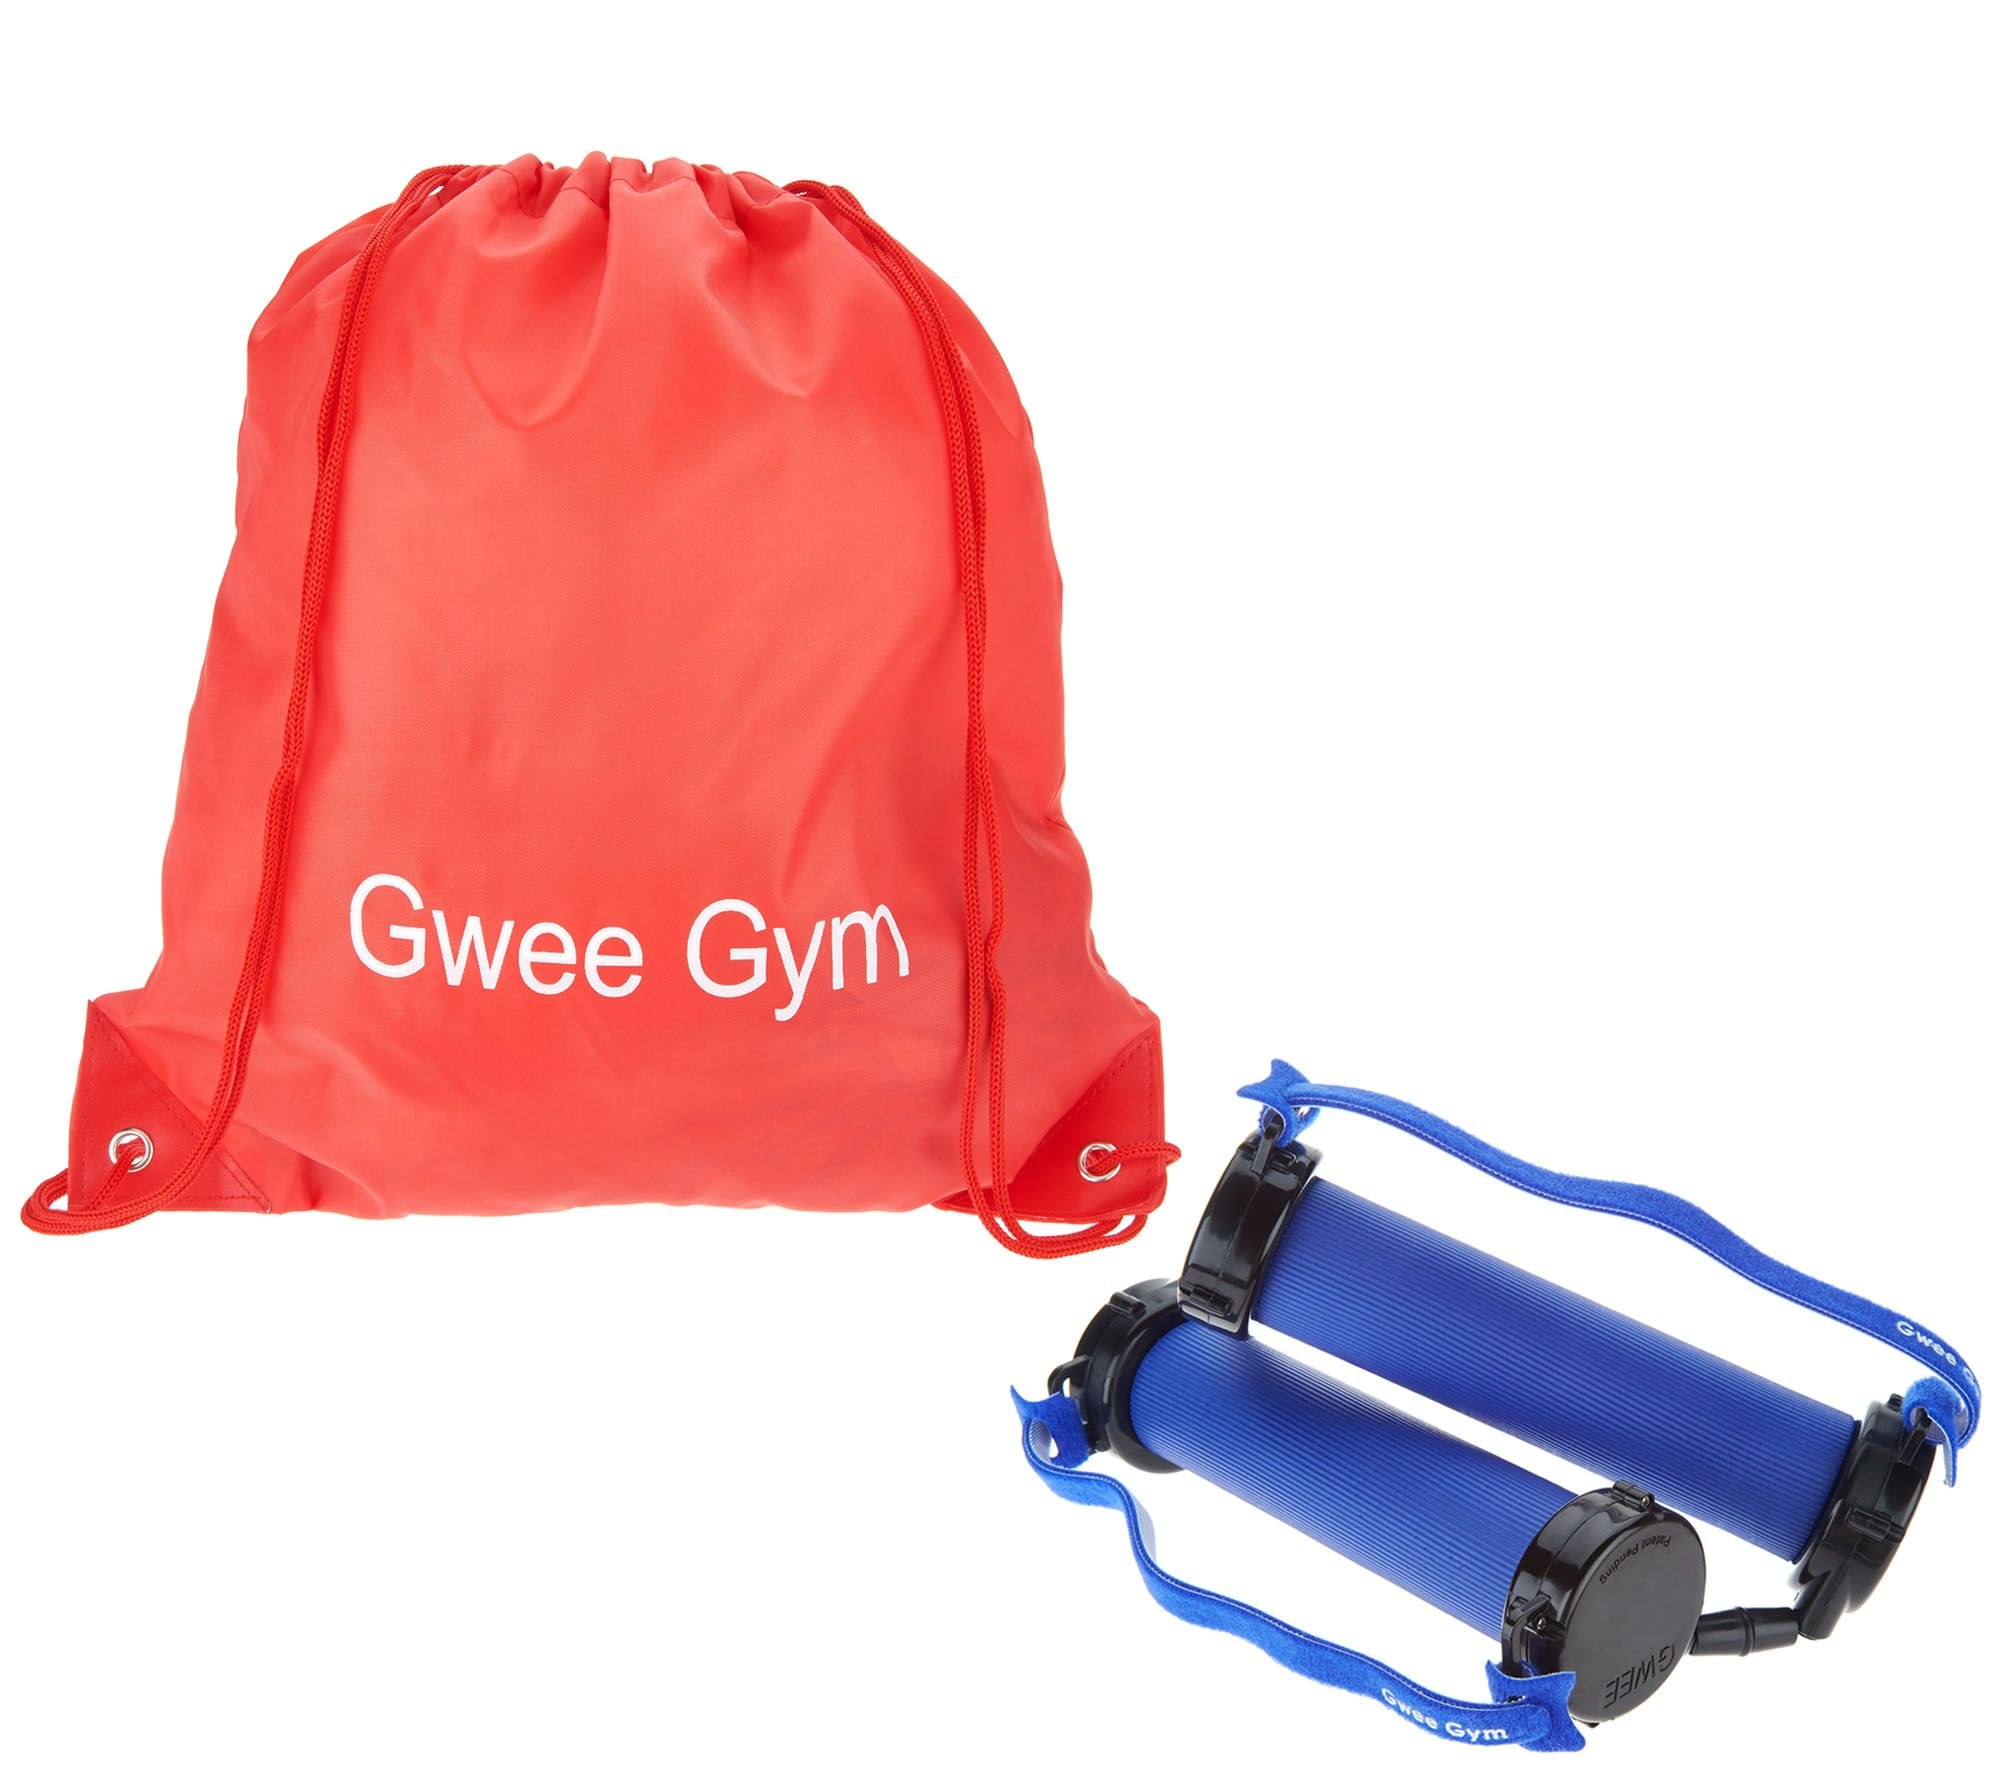 Gwee gym resistance band workout system page u qvc